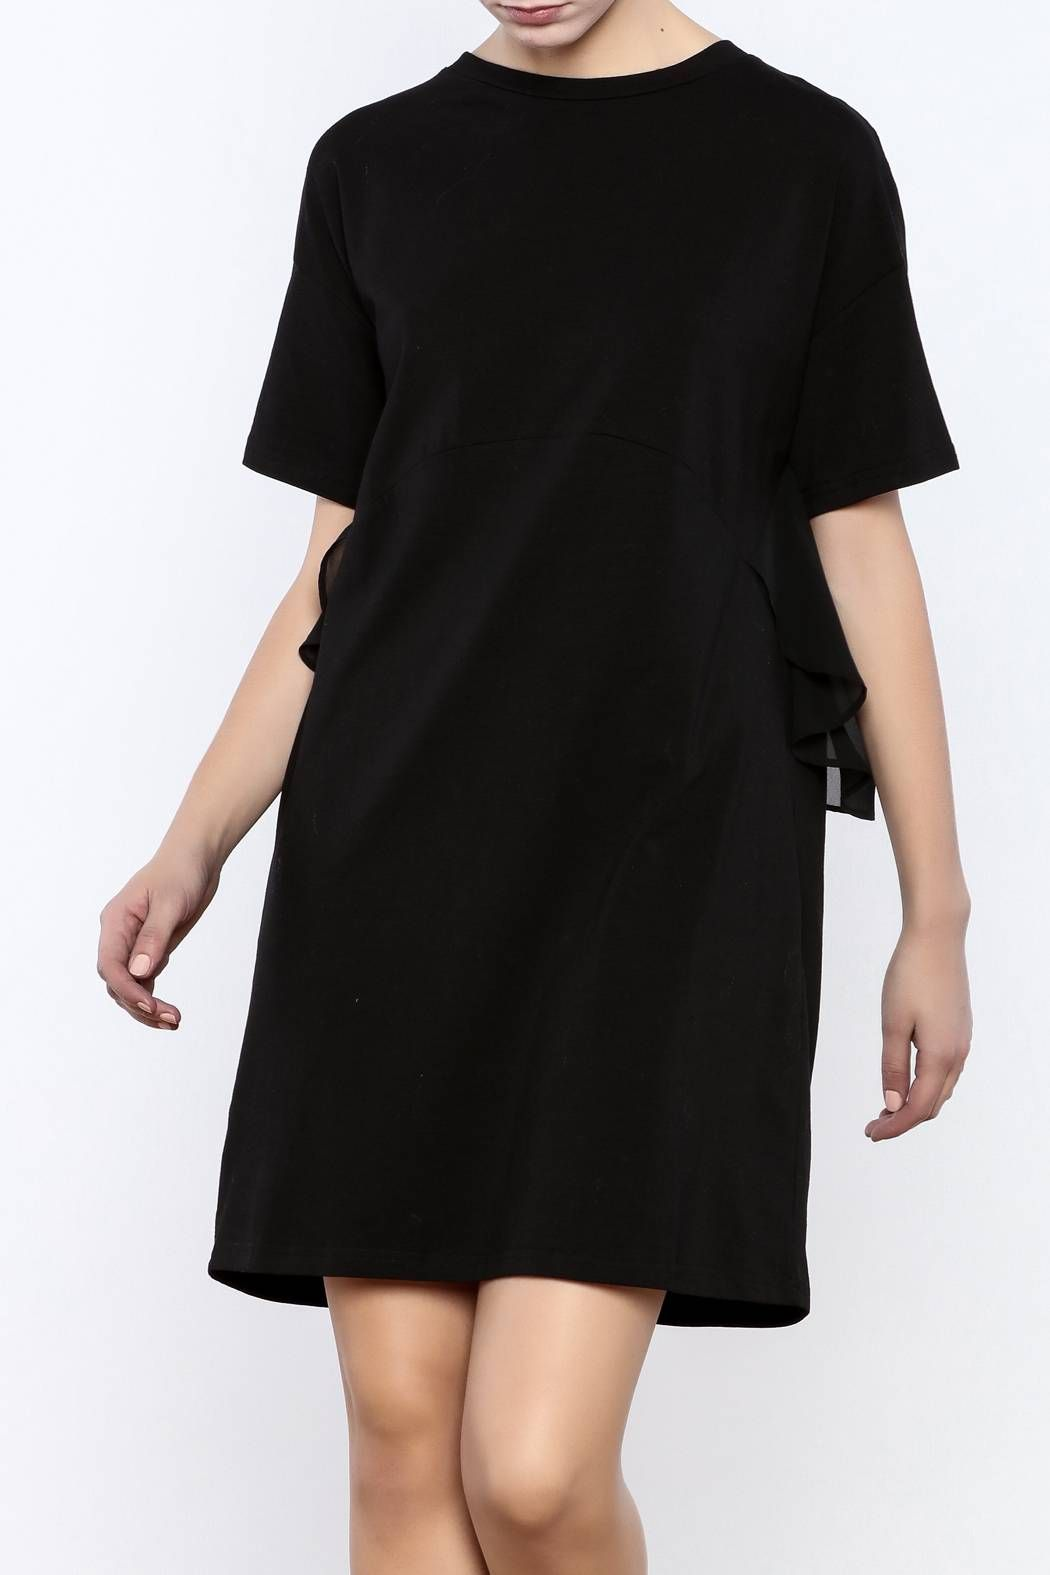 A shappe black ruffled dress shorts products and clothing